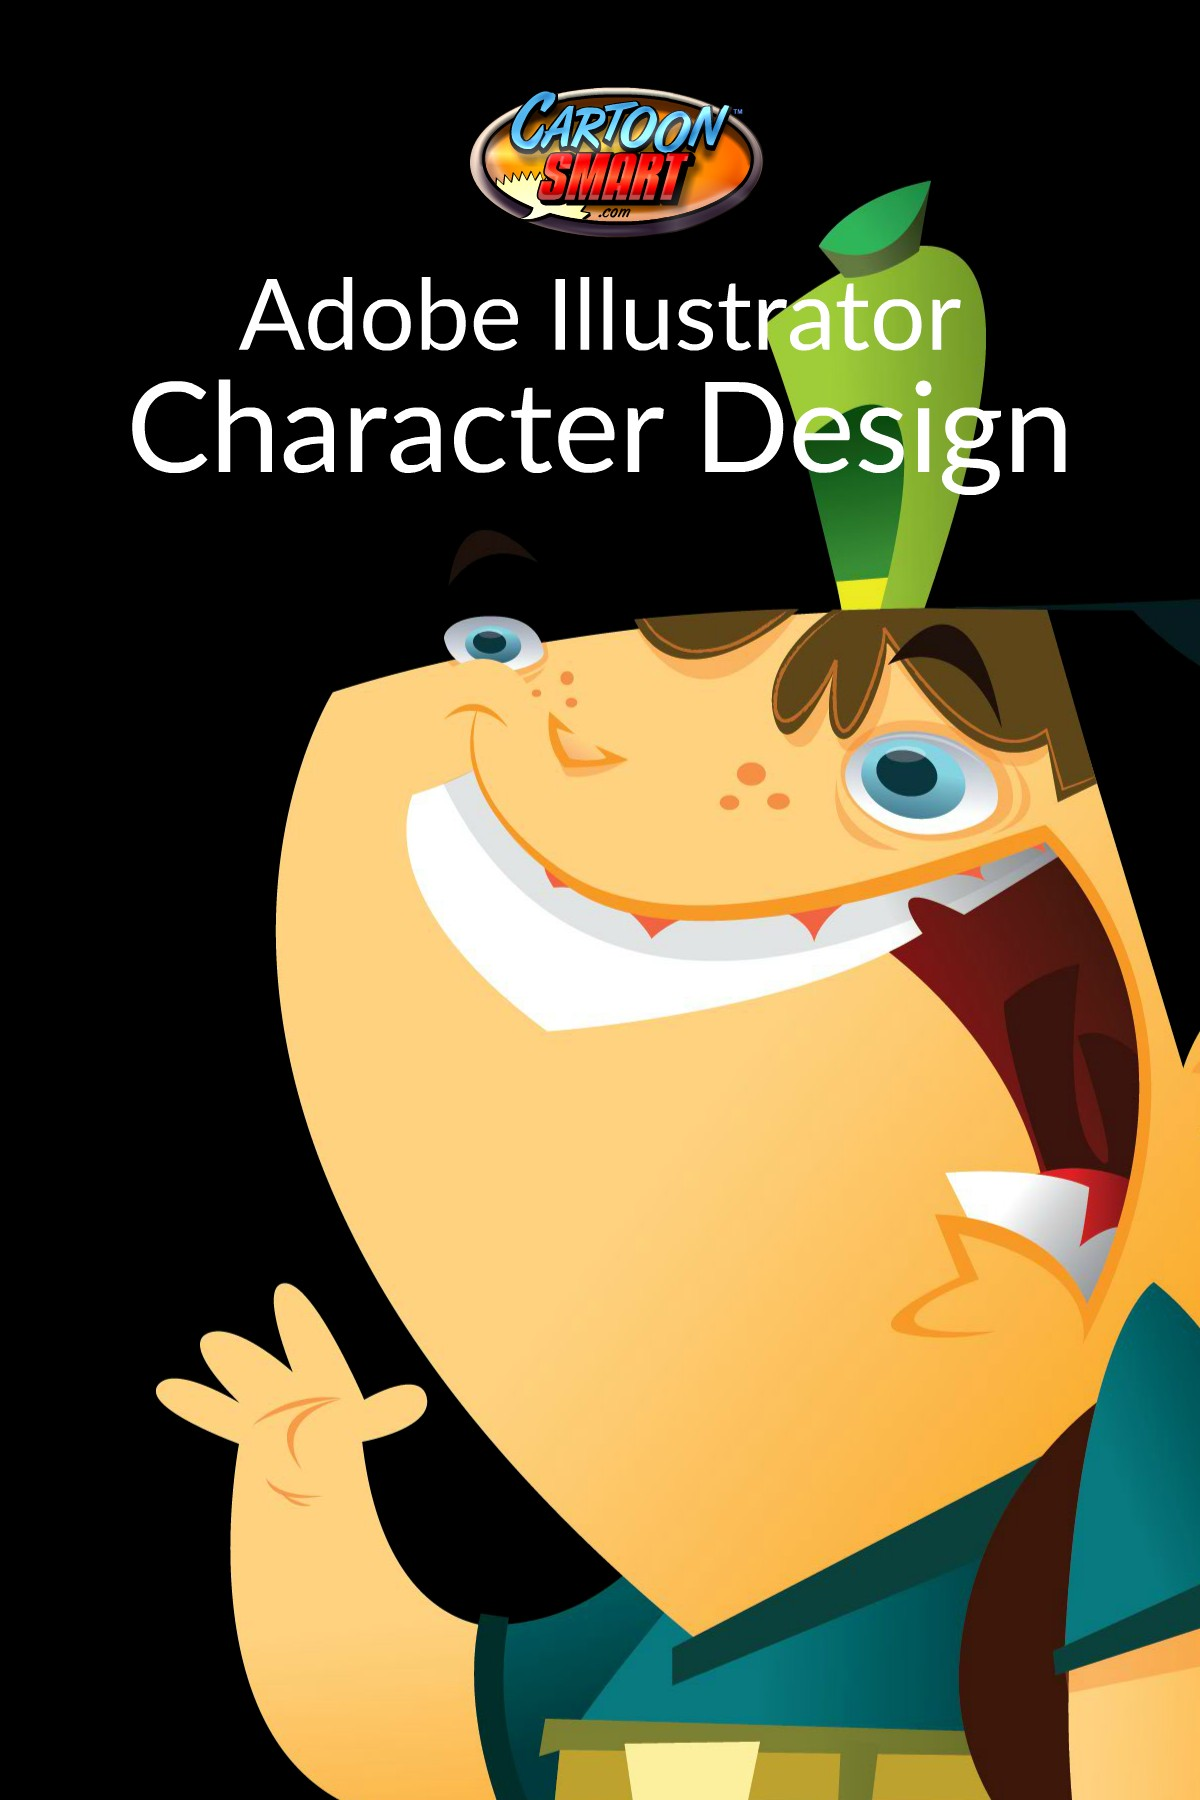 Character Design Tutorial Free : Adobe illustrator character design subscriber access